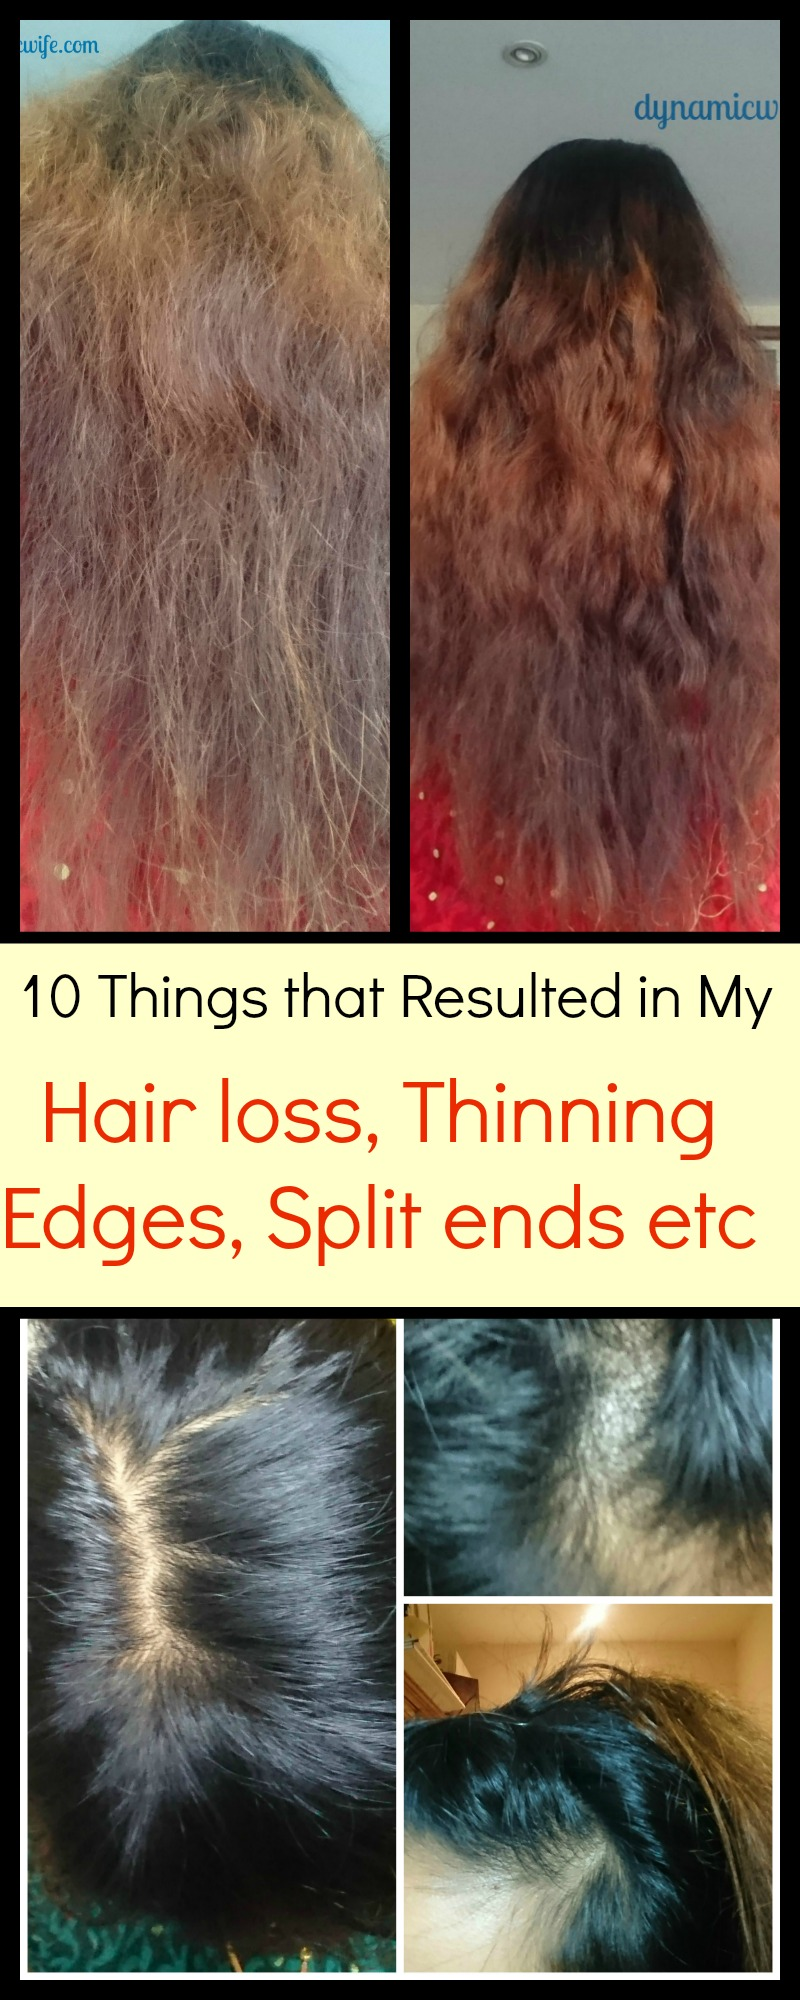 10 Causes Of My Thinning Edges Bald Spot And Split Ends